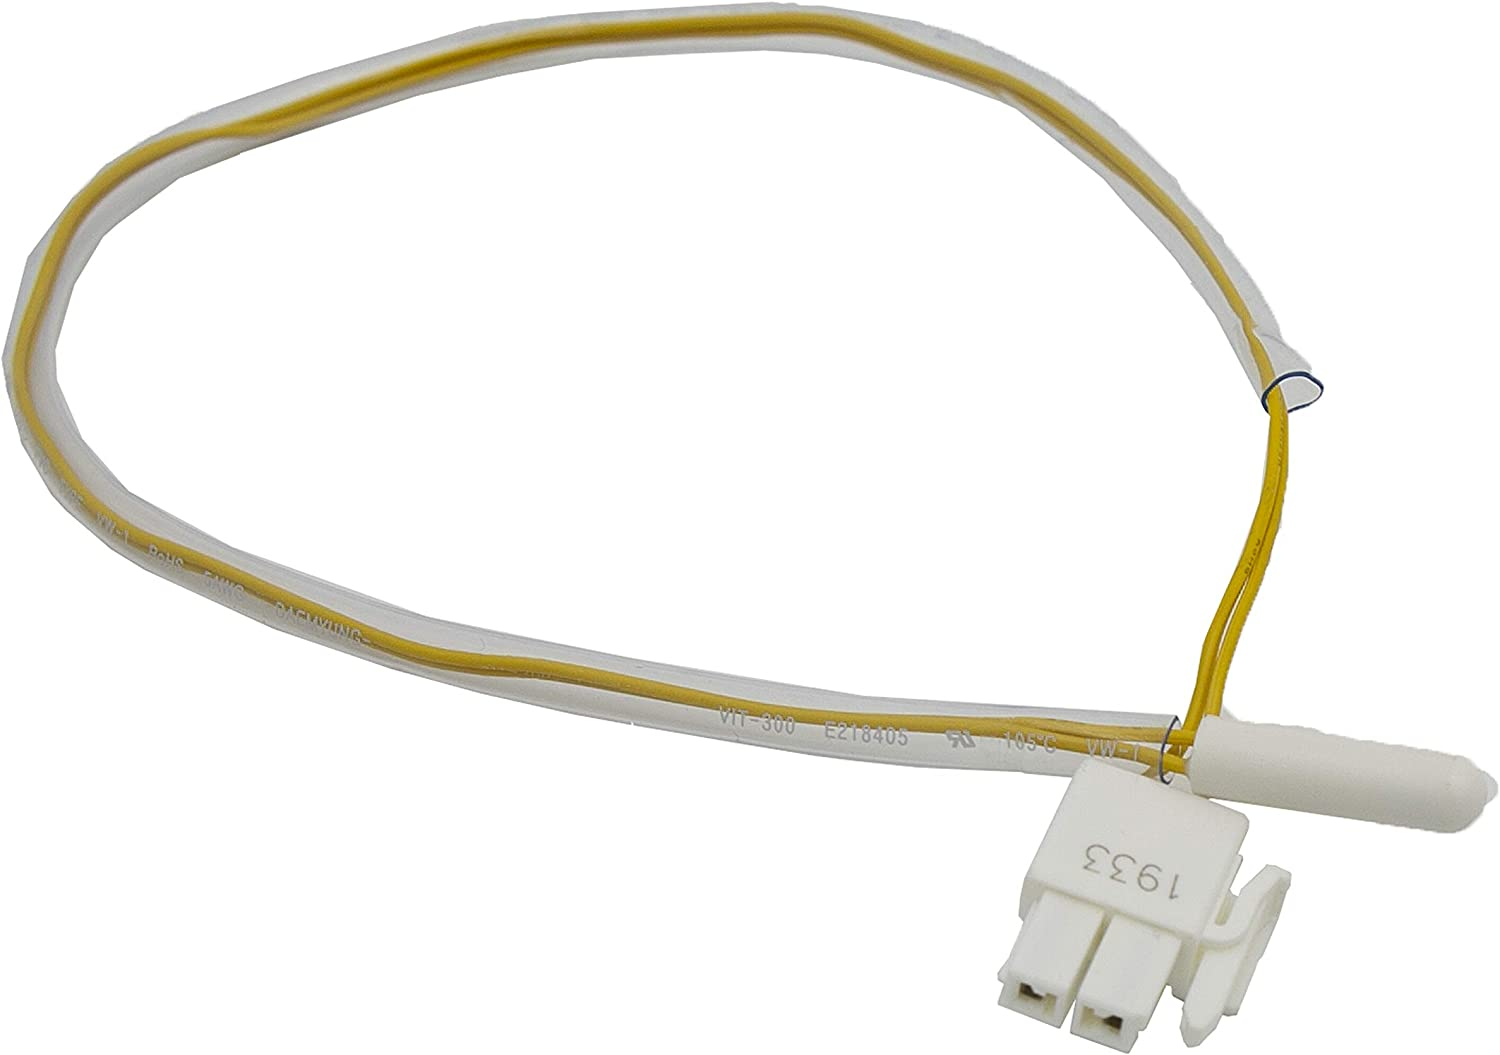 『Enterpark』 Premium Quality Cost Effective Part for DA32-00006S Replacement of Refrigerator Defrost Sensor